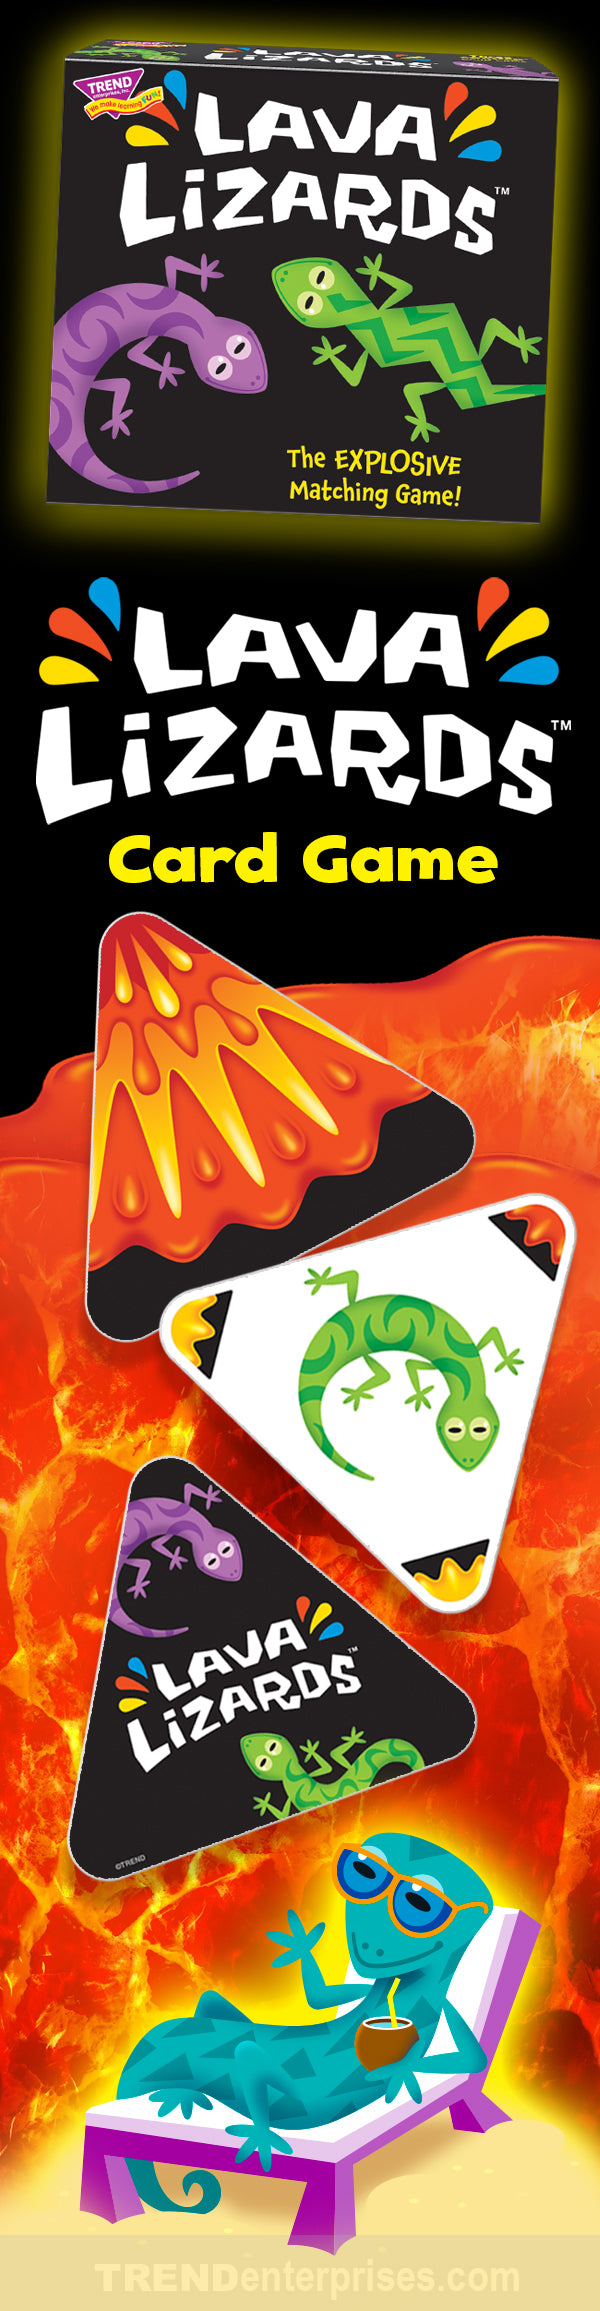 Lava Lizards™ triangle card game for kids! Get ready for a game full of explosive finishes! Lava lizards spend their days lounging on hot lava rocks, unknowingly surrounded by active volcanoes that may explode any second...